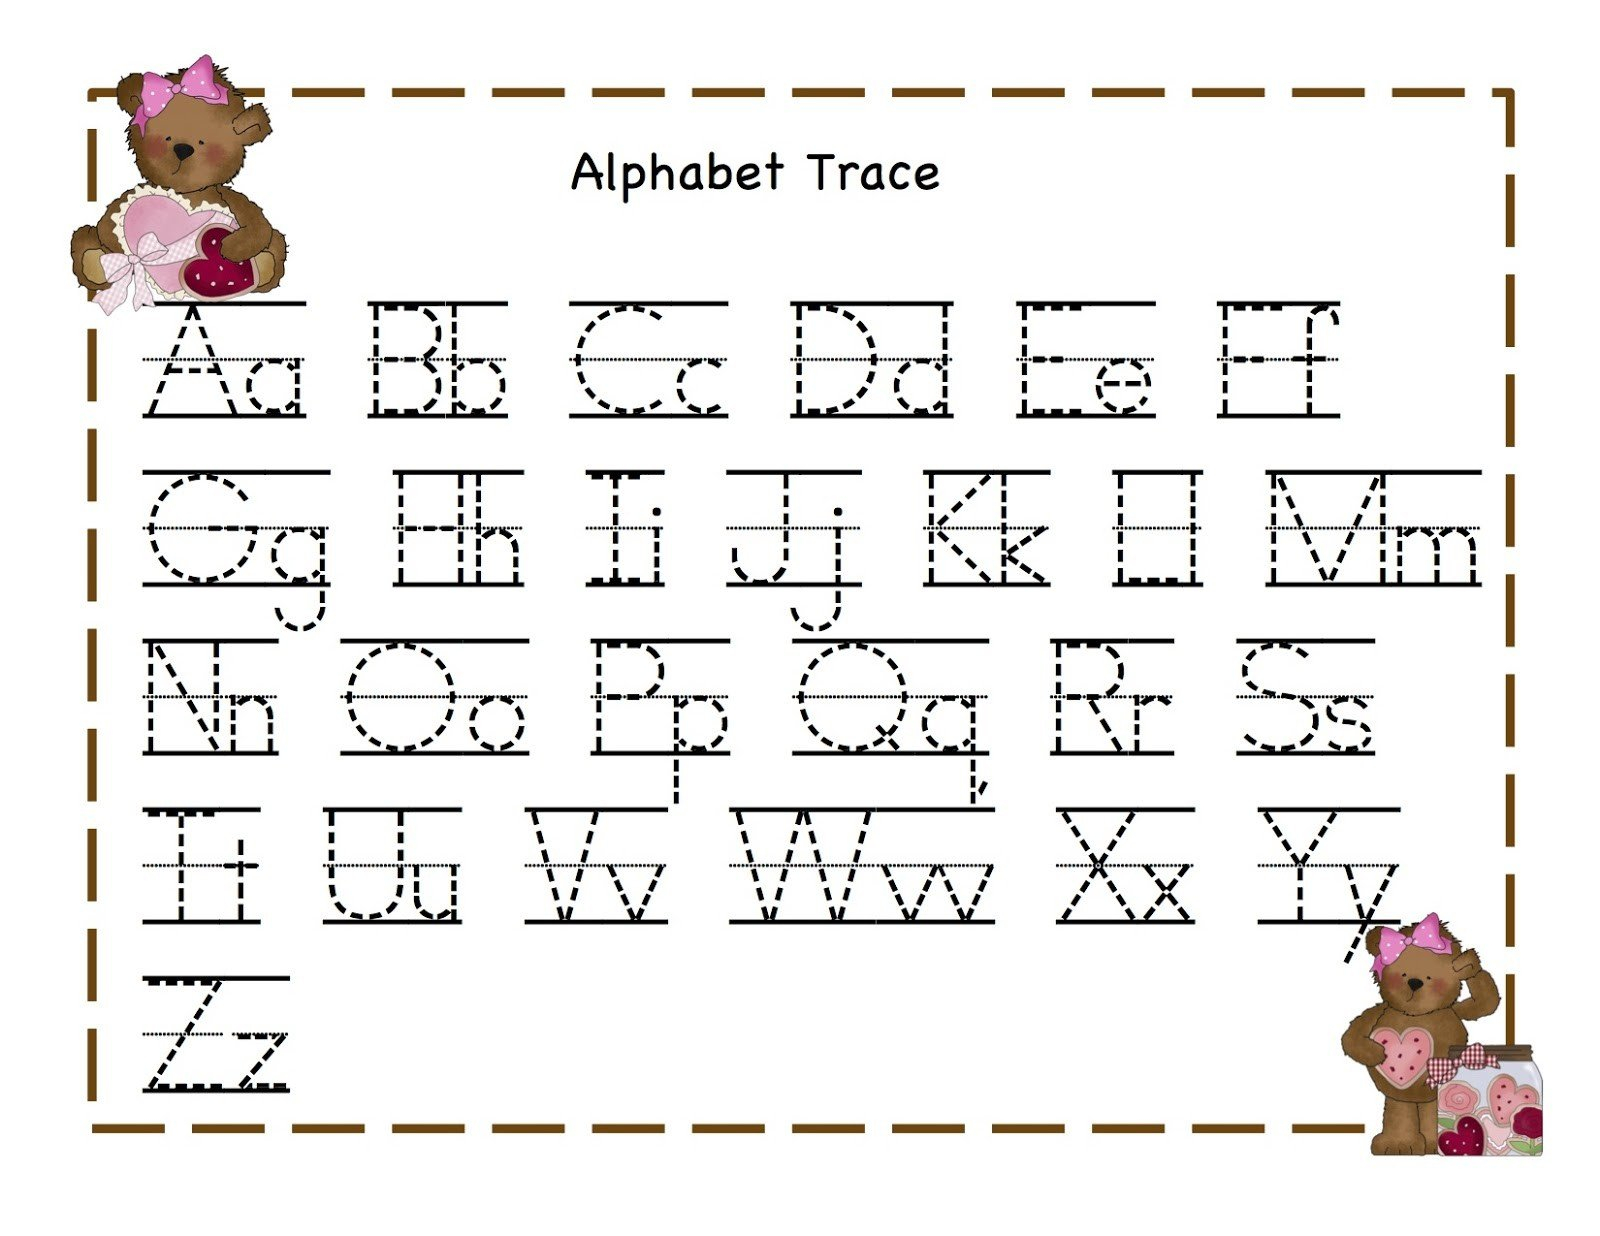 W Worksheets With Acids And Bases Worksheet  Yooob For Alphabet Tracing Worksheets For 3 Year Olds